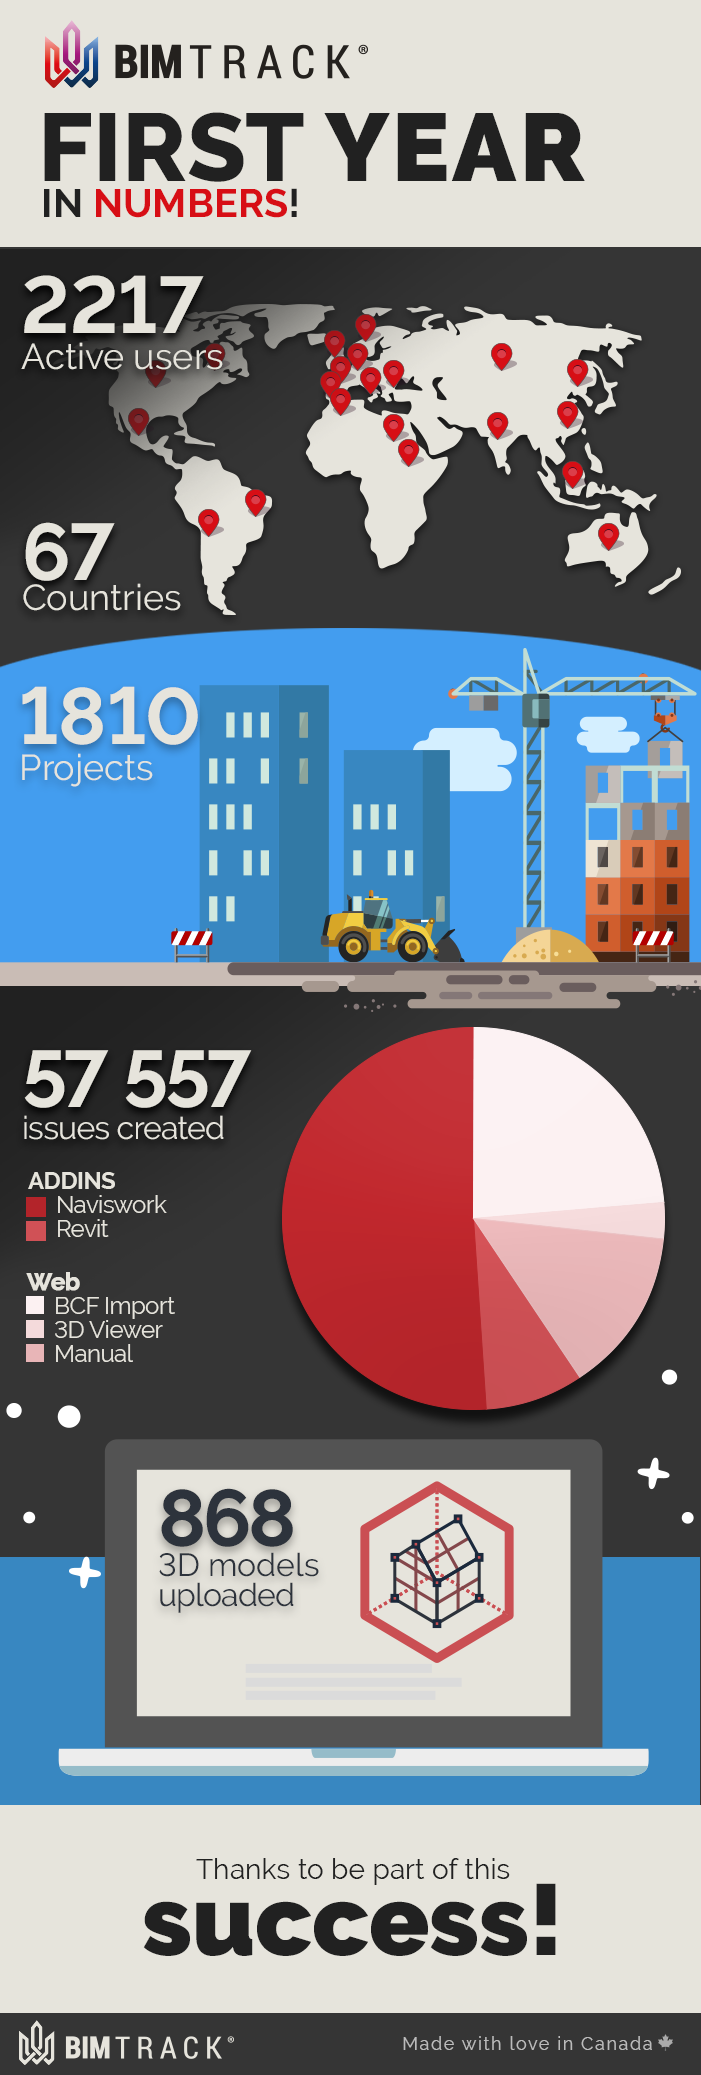 BIM Track first year in numbers